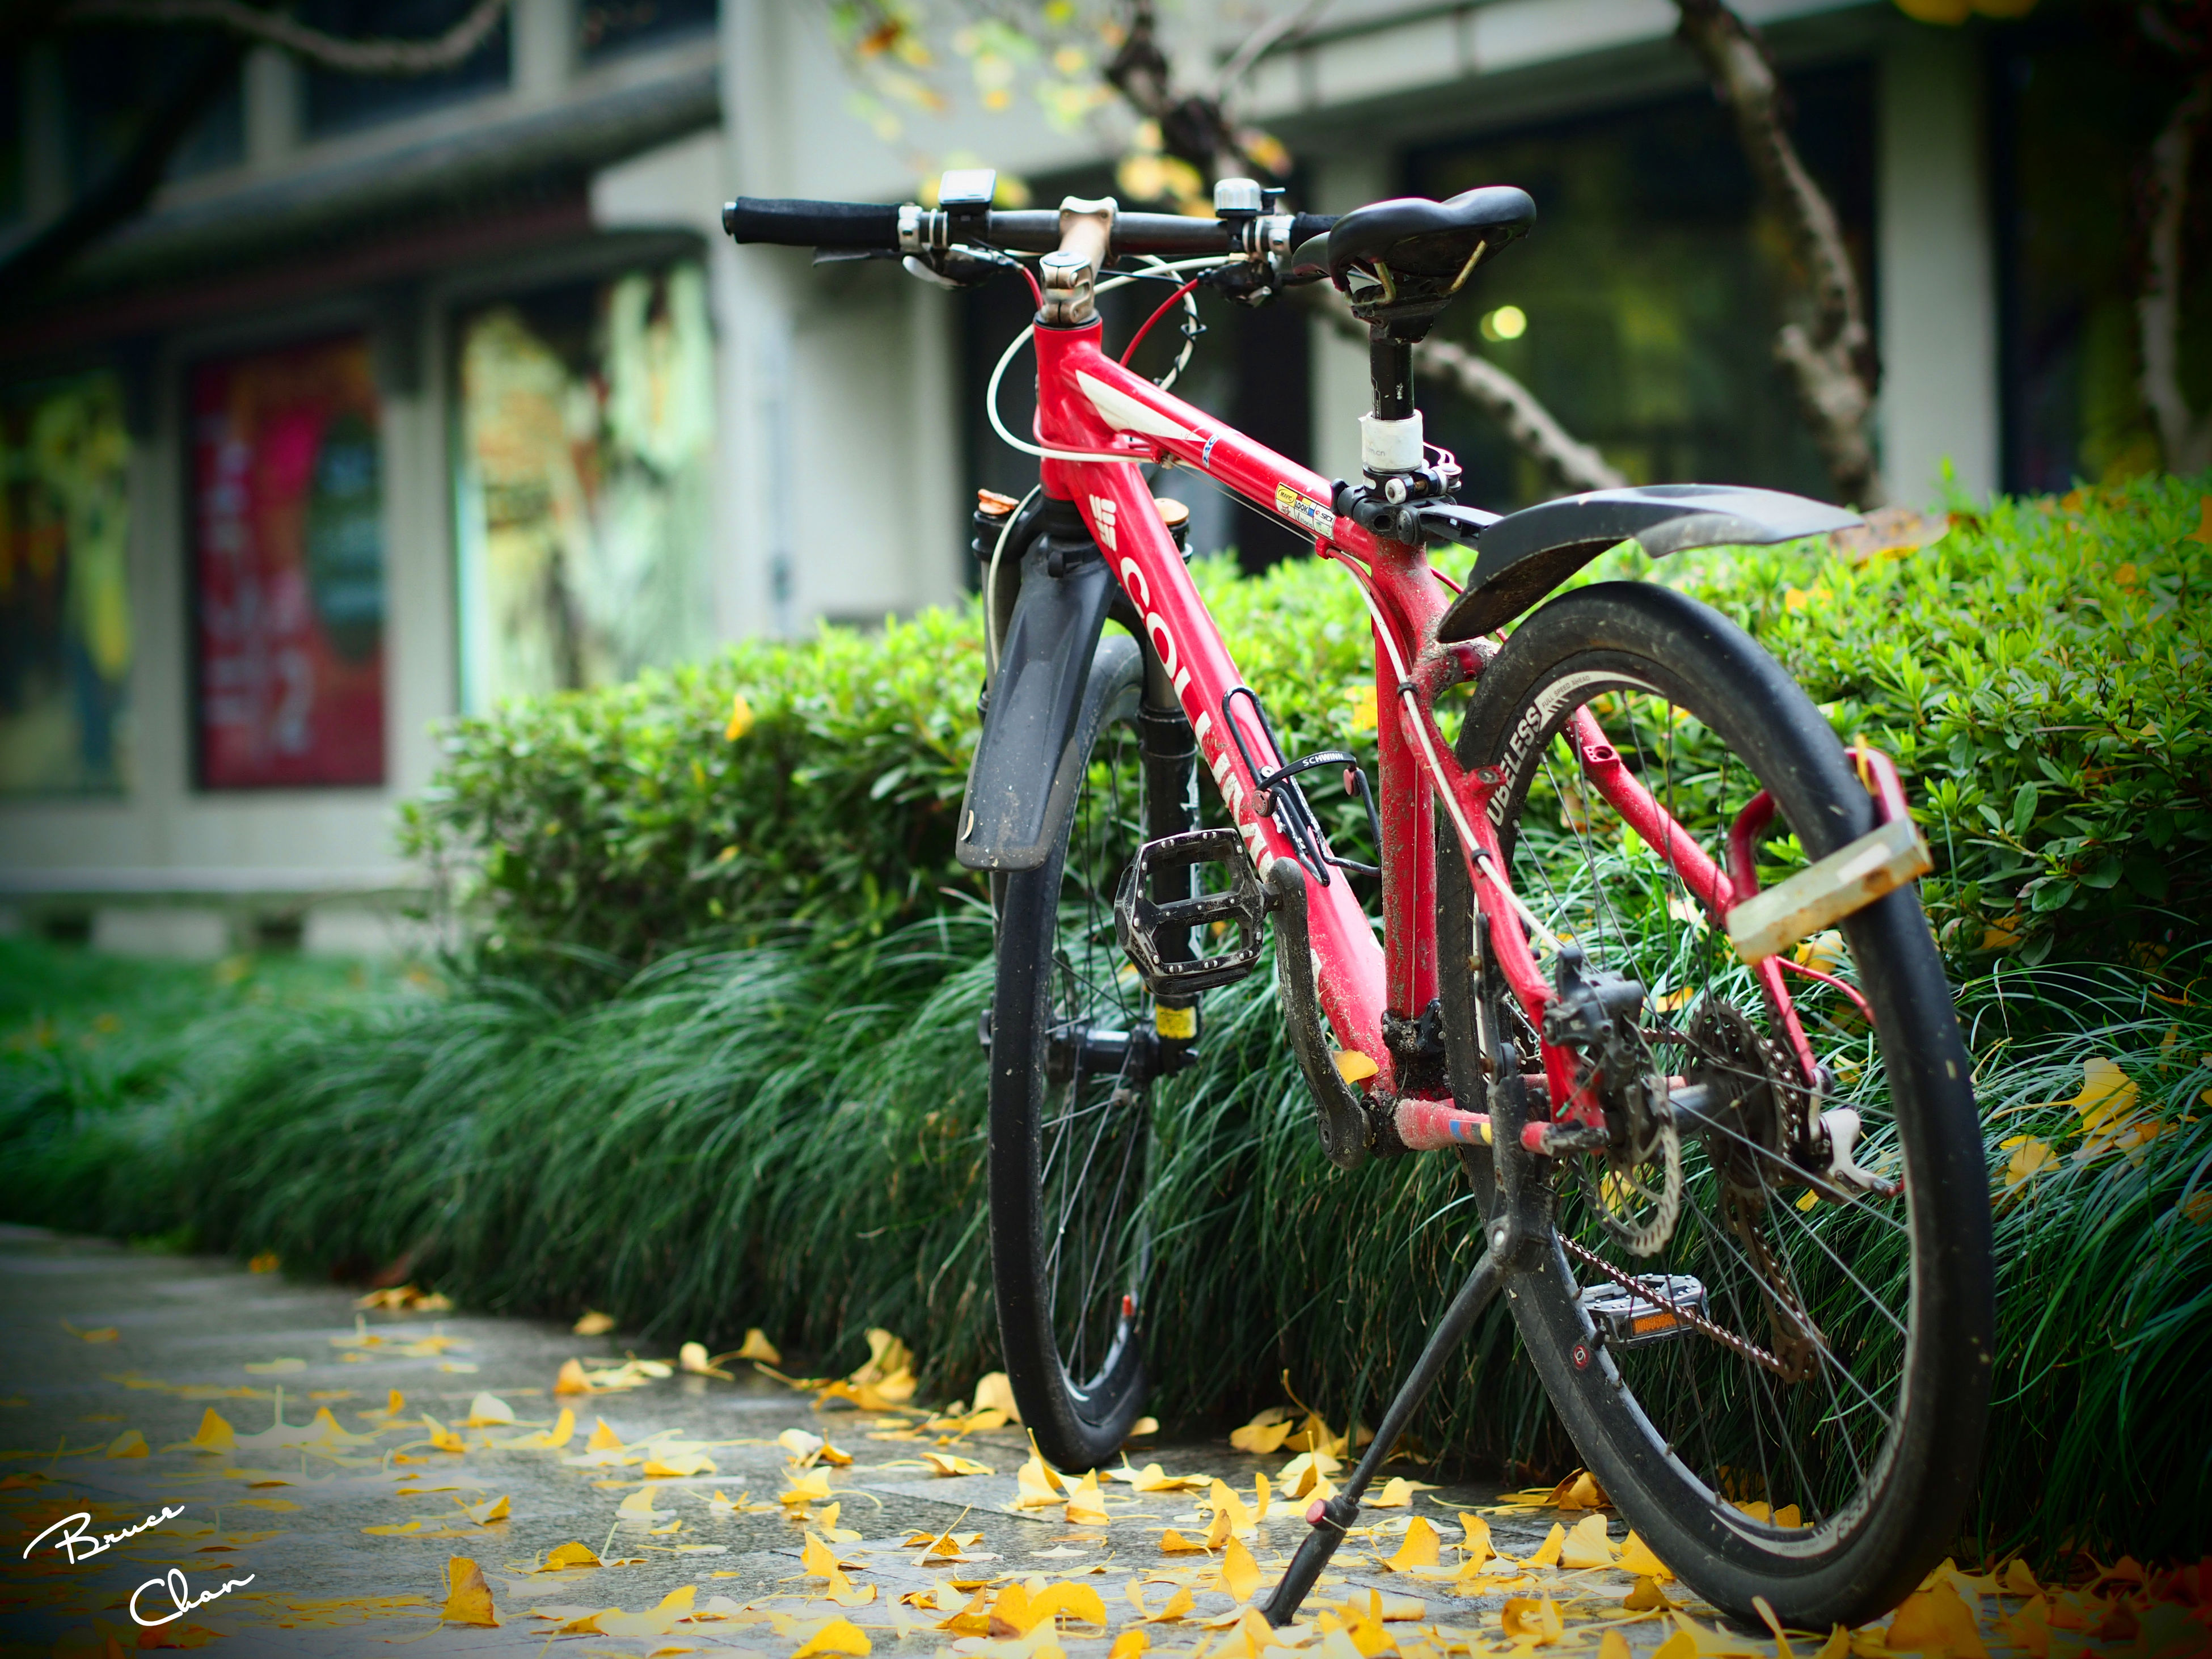 bicycle, mode of transport, transportation, land vehicle, stationary, parking, parked, wheel, focus on foreground, red, plant, outdoors, day, street, tree, travel, no people, motorcycle, selective focus, leaning